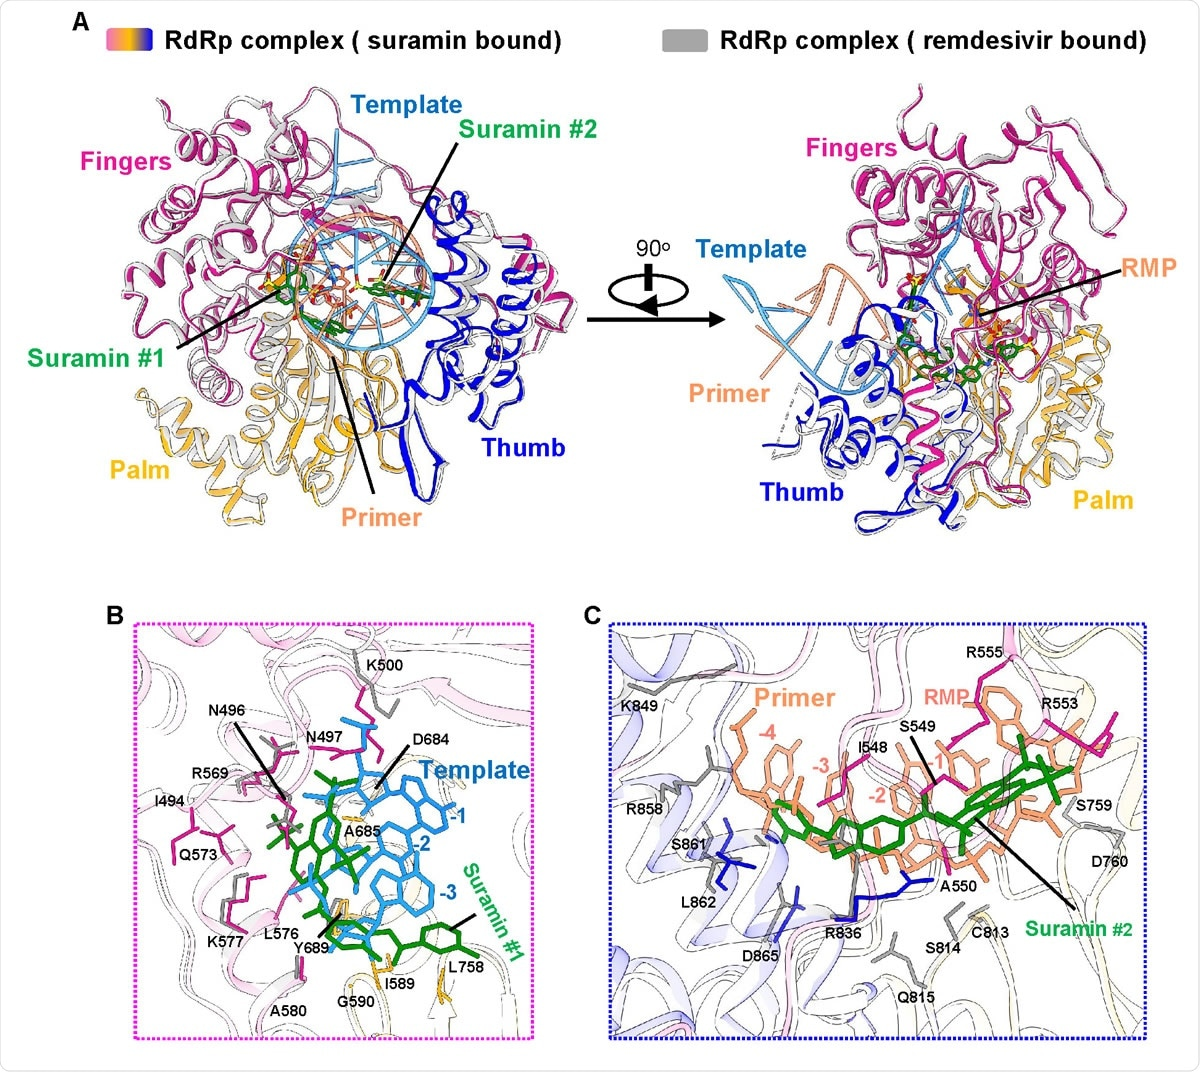 Inhibition mechanism from comparison with the remdesivir-bound RdRp structure A. The two overall views of the RdRp-suramin complex overlapped with the remdesivir-bound RdRp structure (PDB ID: 7BV2). For clarity, only the polymerase domains are presented. The remdesivir bound RdRp structure is set as light gray, the template RNA is set as cyan, and the primer RNA is set as red. B. Close view of suramin #1 overlapped with RNA template strand. C. Close view of suramin #2 overlapped with RNA primer strand.